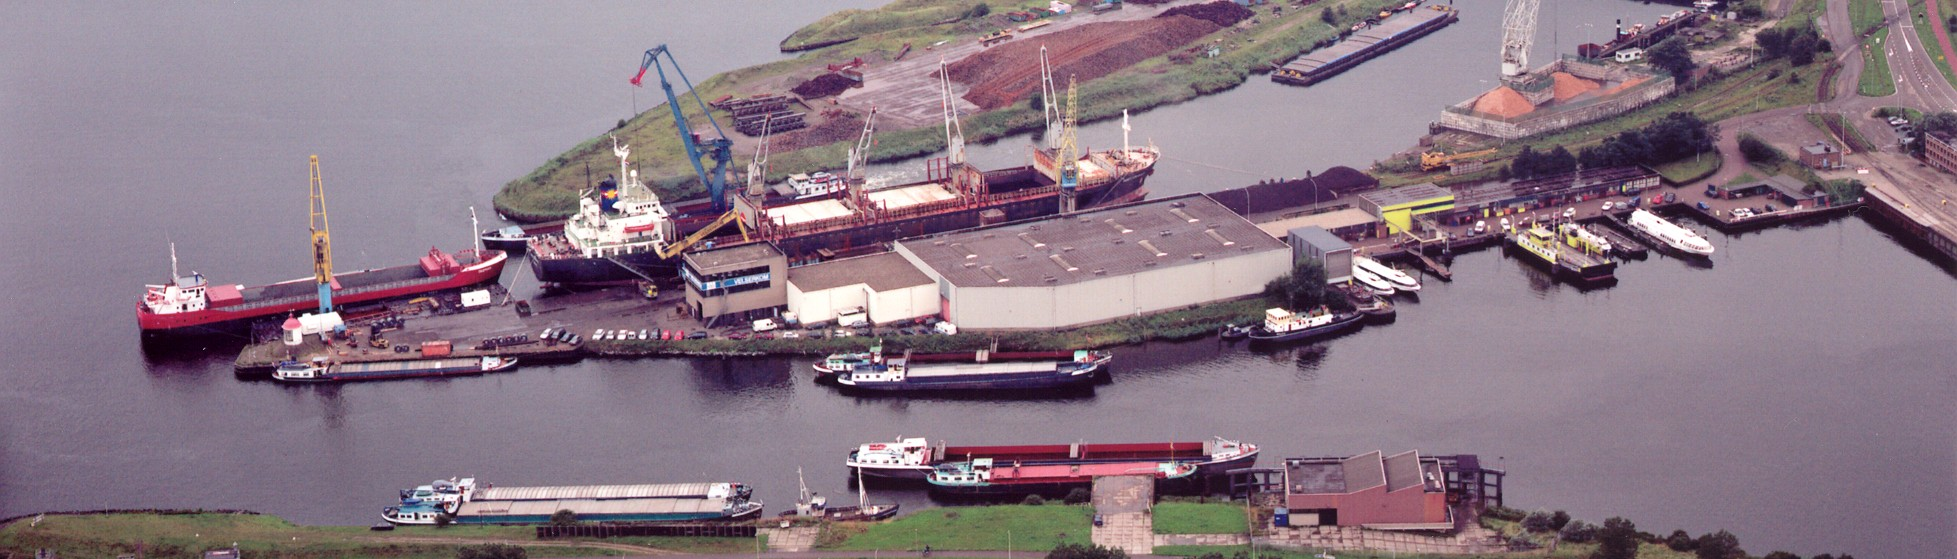 Aerial view of the Nebam shipping agency